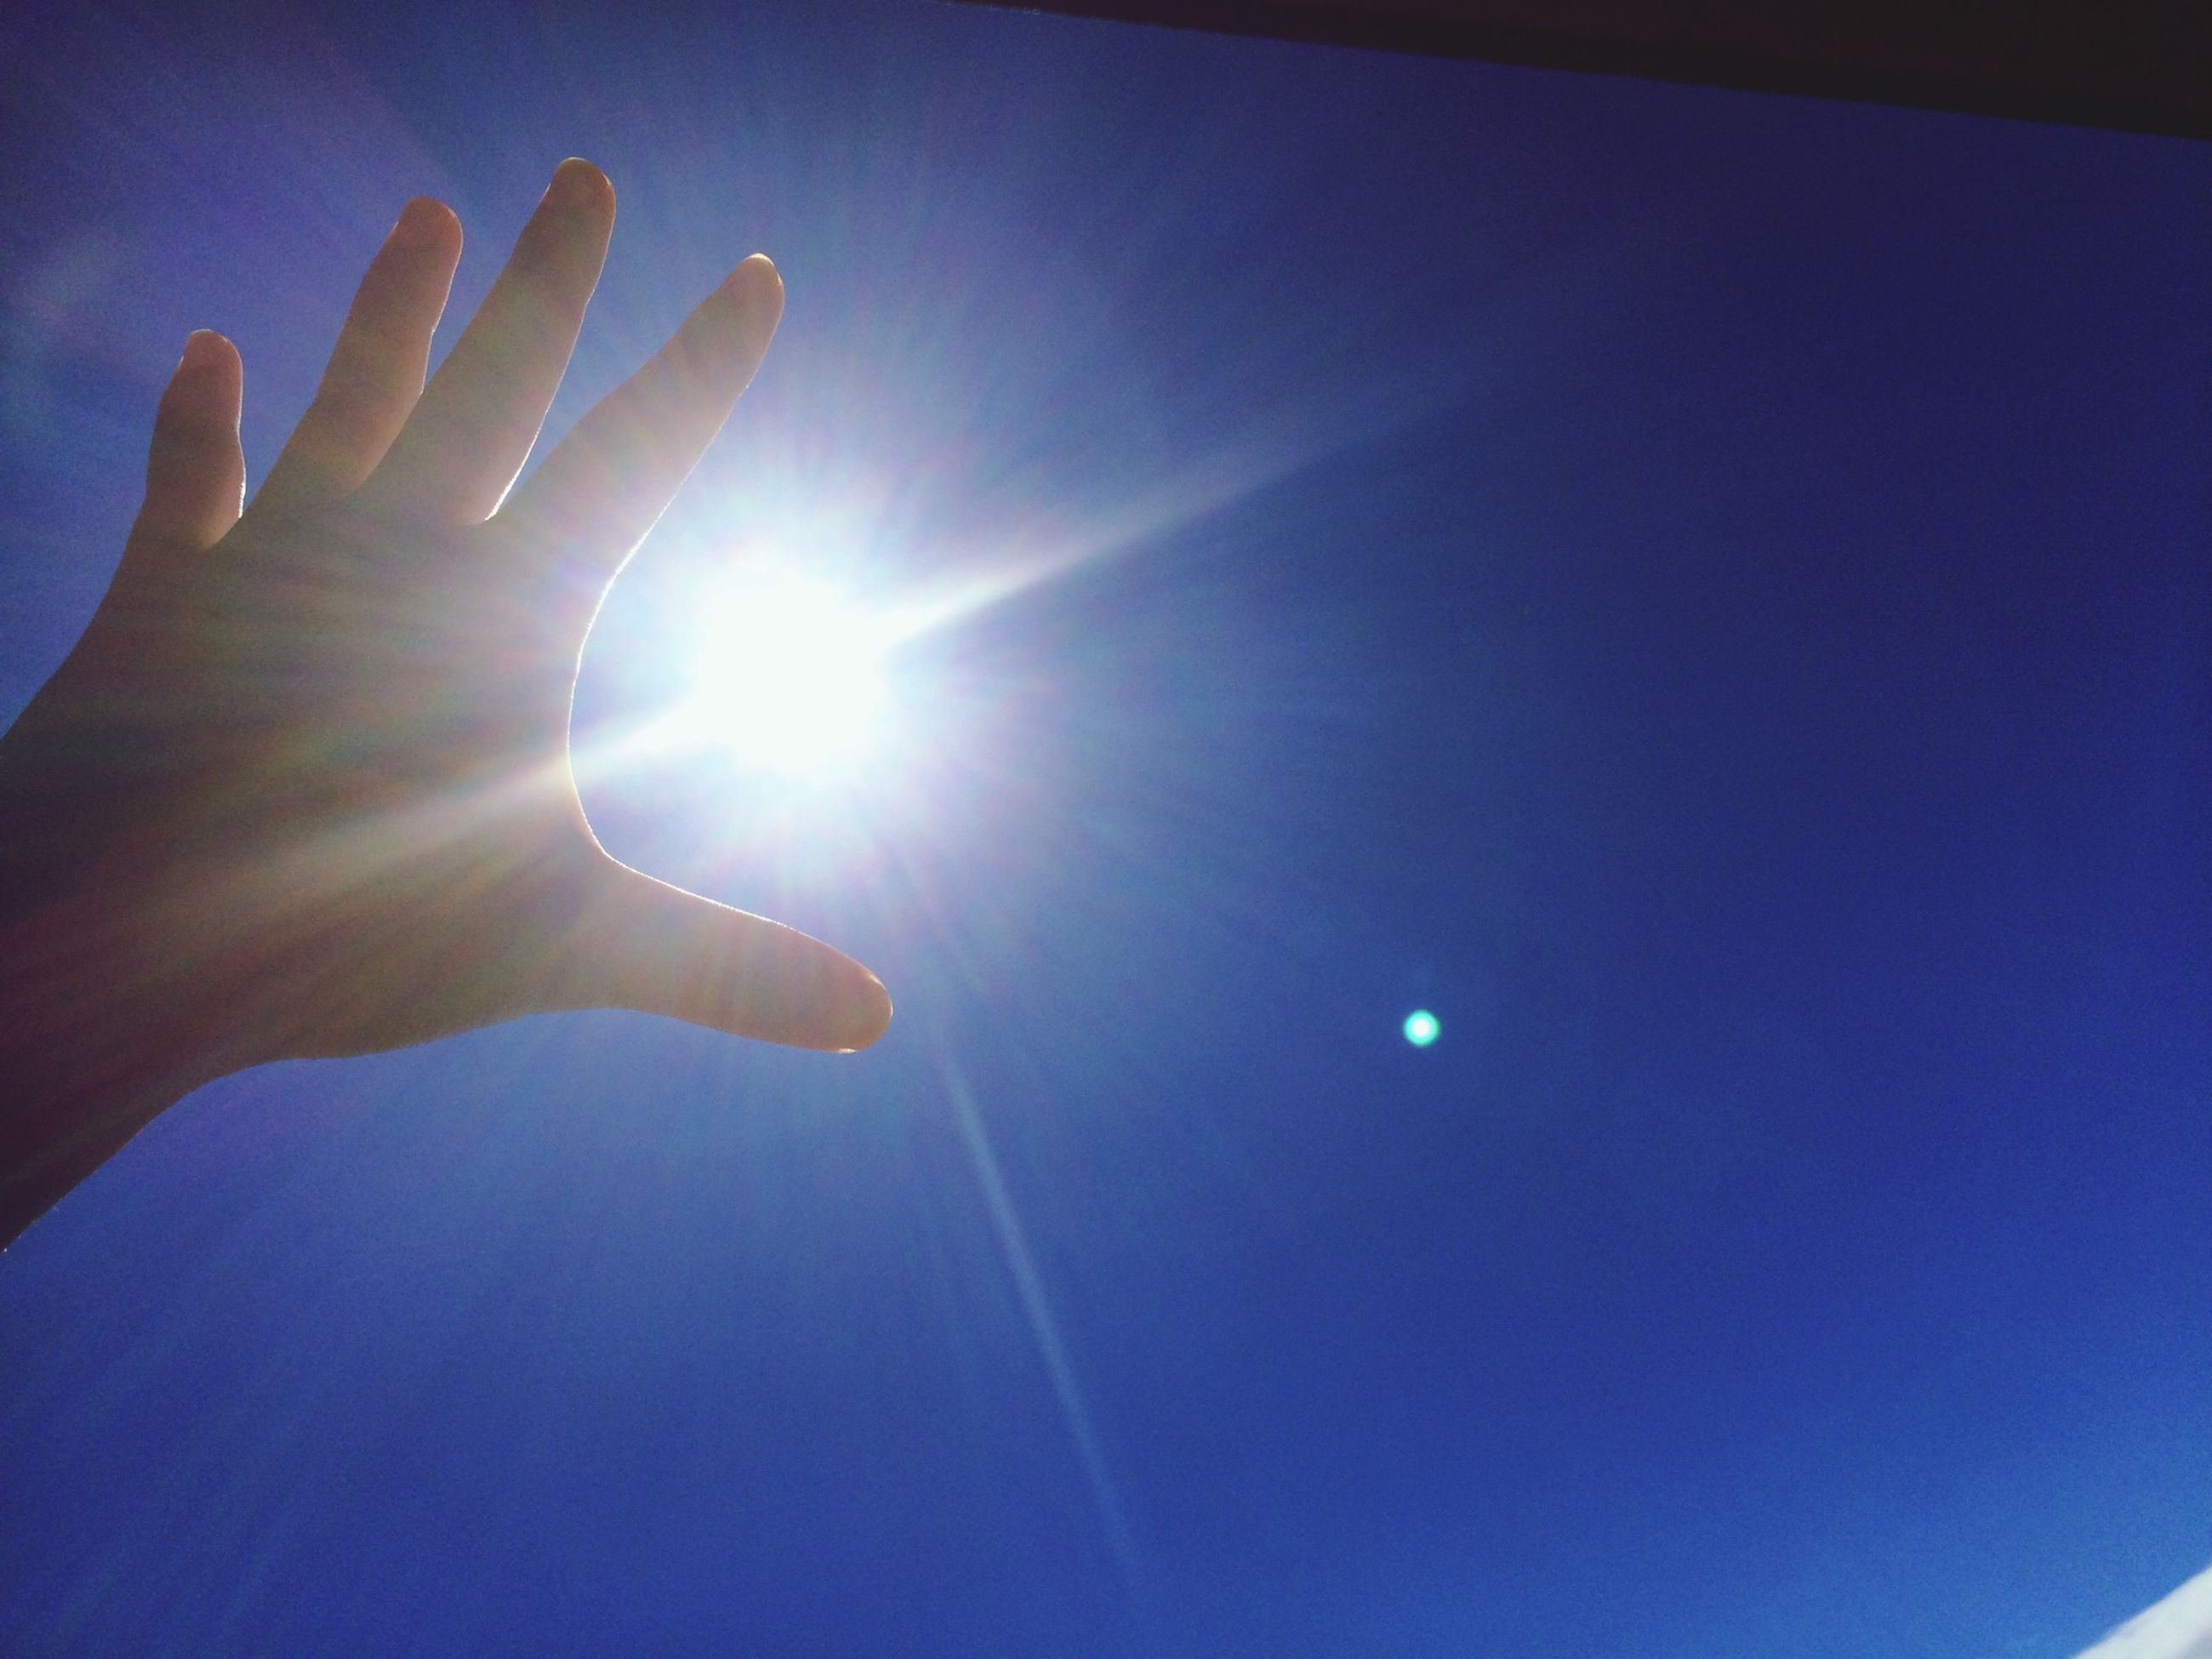 blue, person, part of, sun, sunlight, cropped, lifestyles, leisure activity, human finger, low angle view, sunbeam, lens flare, unrecognizable person, holding, personal perspective, one animal, sky